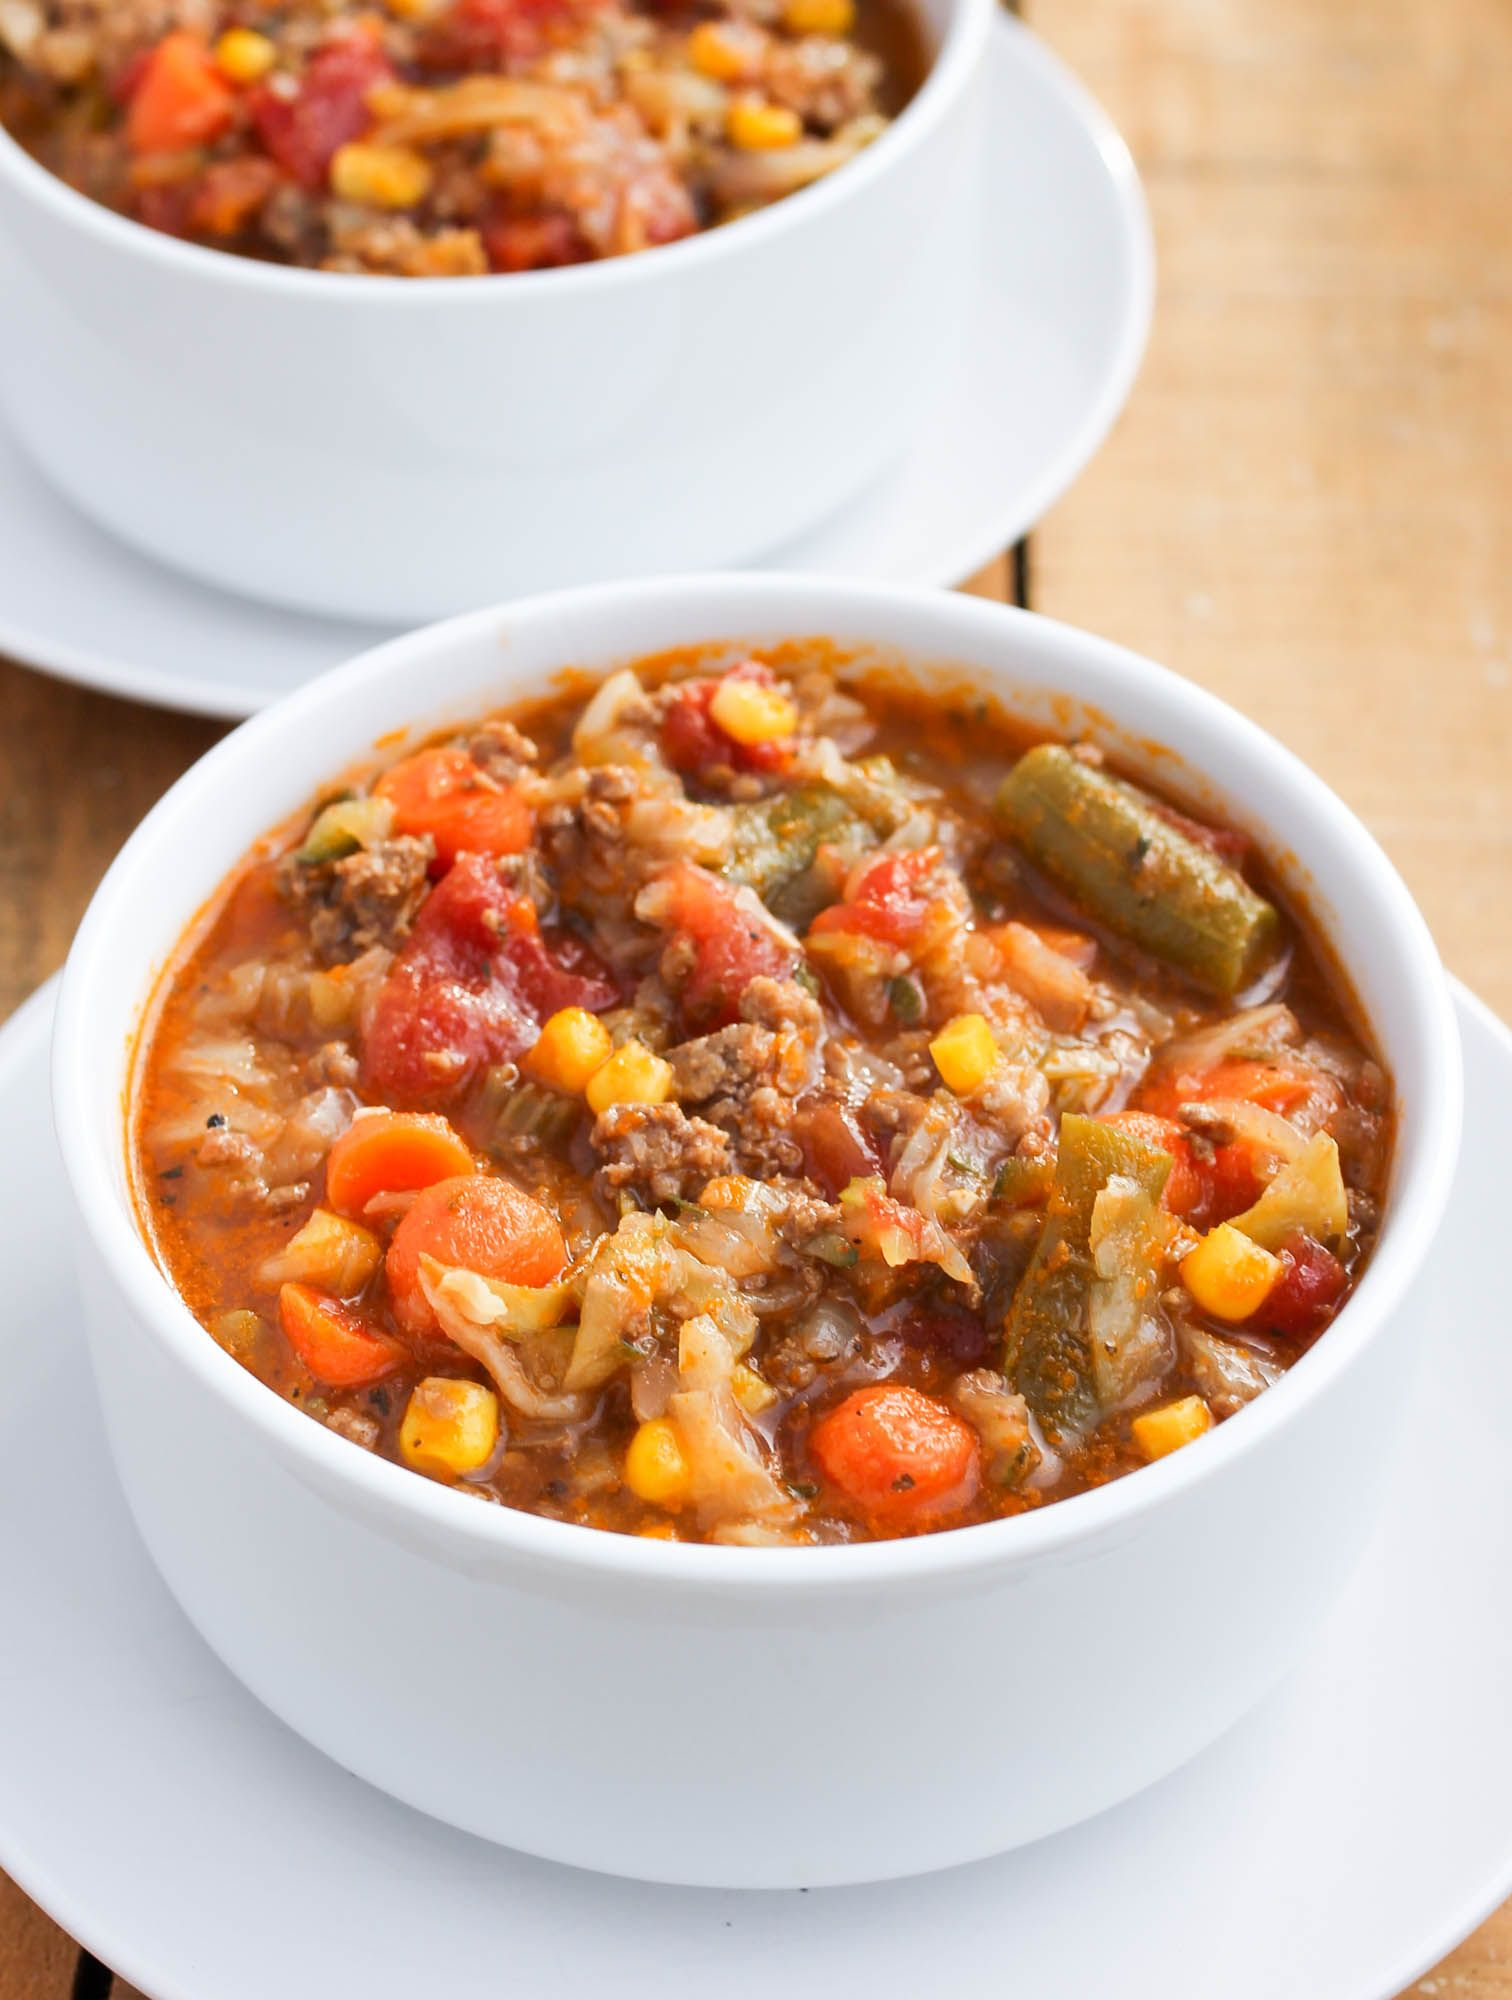 Ground Beef And Cabbage Soup Recipe Beef Soup Recipes Soup With Ground Beef Cabbage Soup Recipes